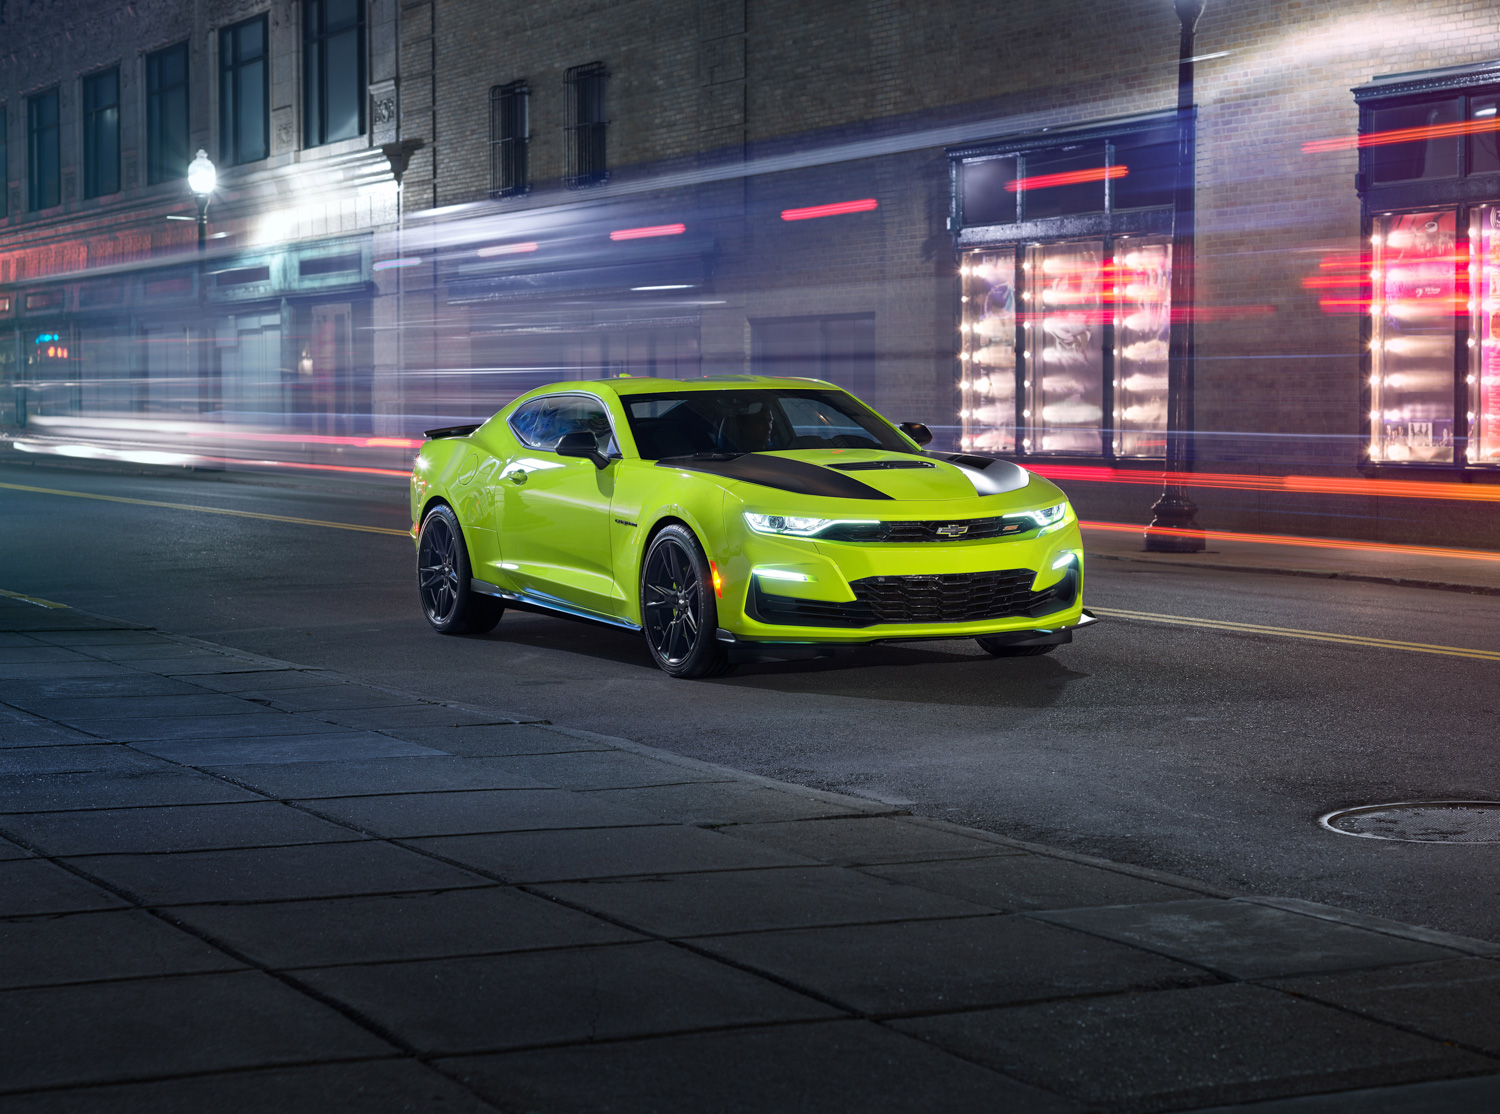 2019 Chevrolet Camaro night 3/4